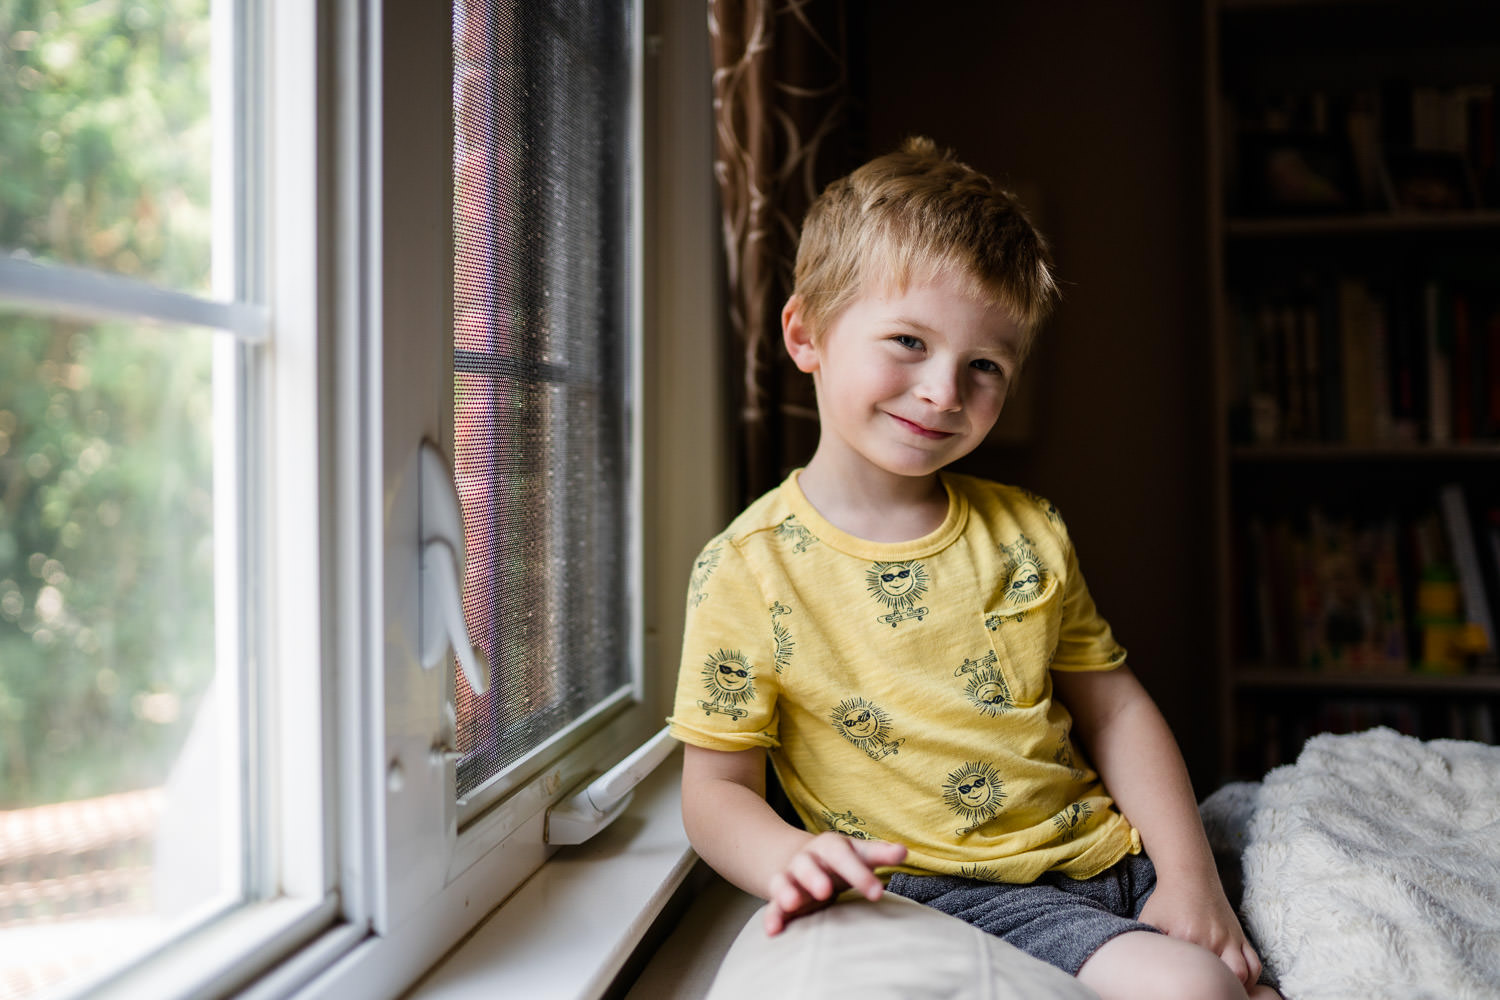 A little boy smiles next to a window.